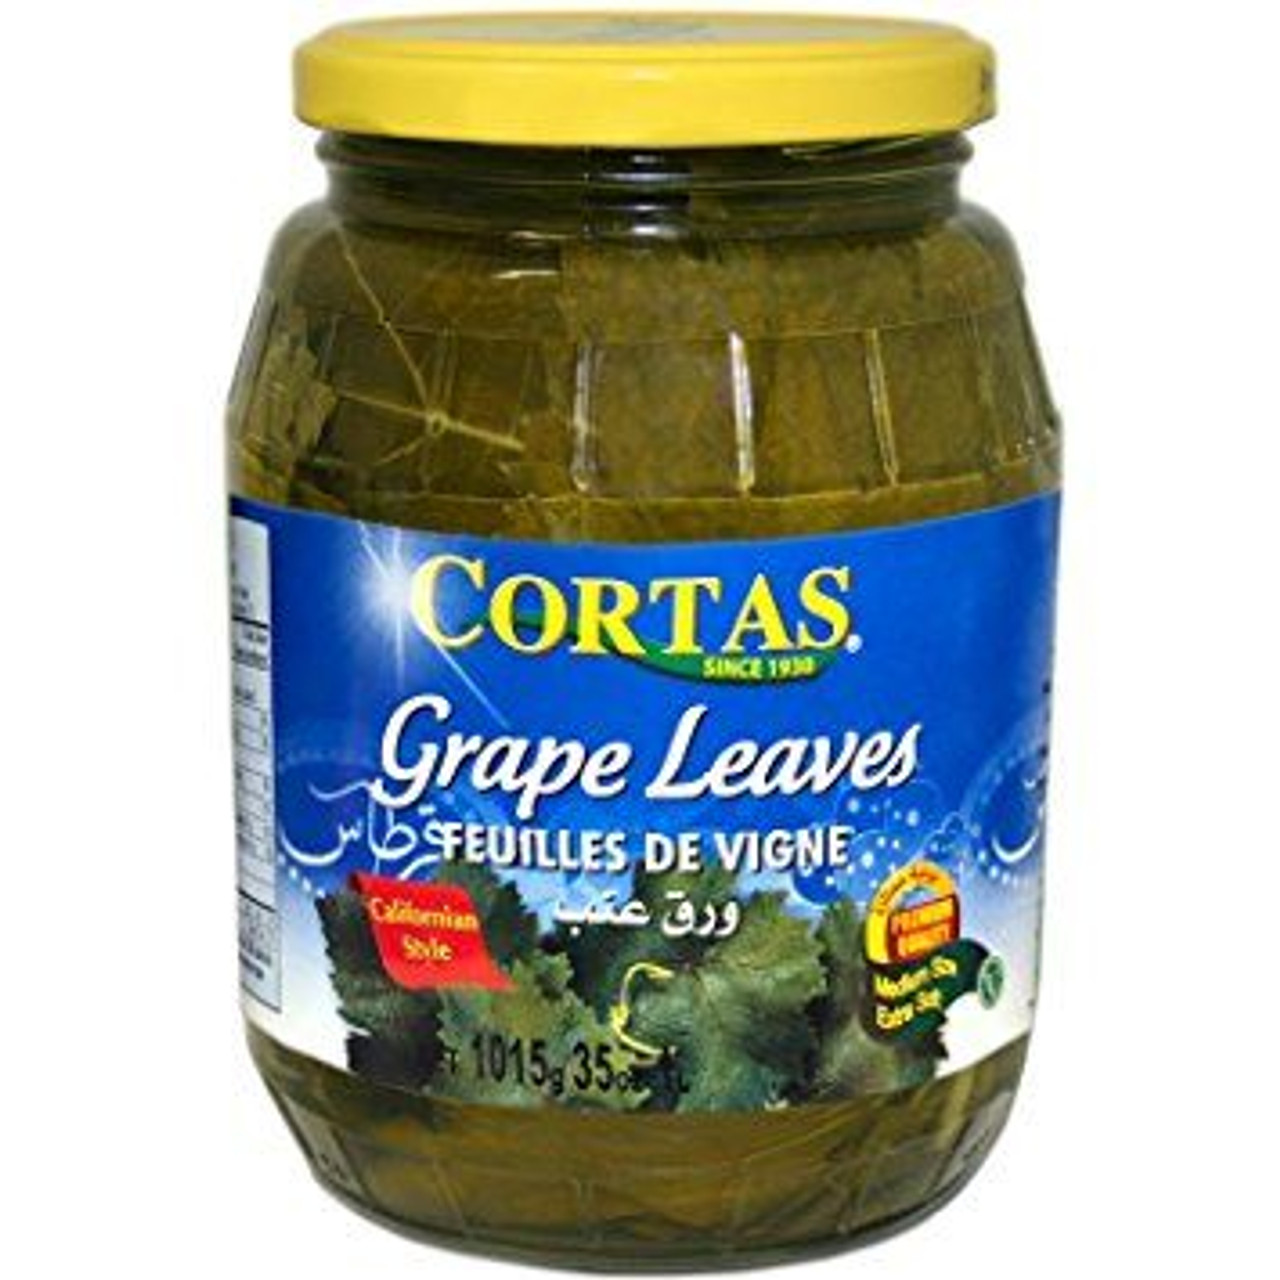 Cortas Vine Leaves In Brine 1015g Jar X 4 Fresco Wholefoods